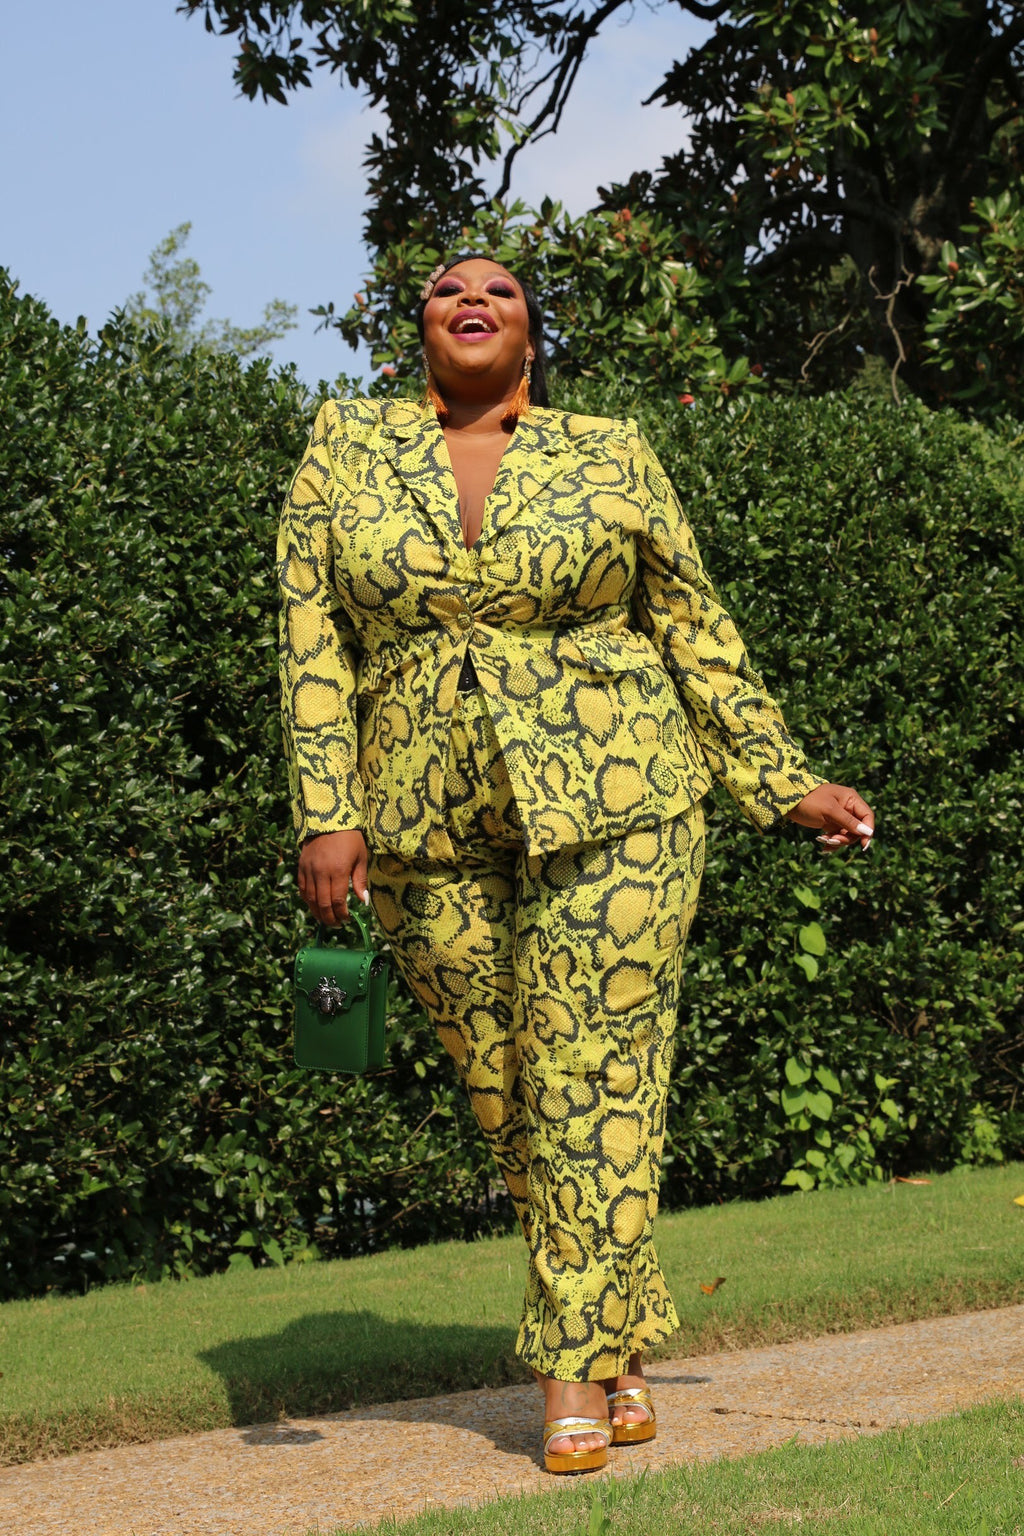 Yellow Snake Suit by Dean of Fashion (Up to Size 3X)